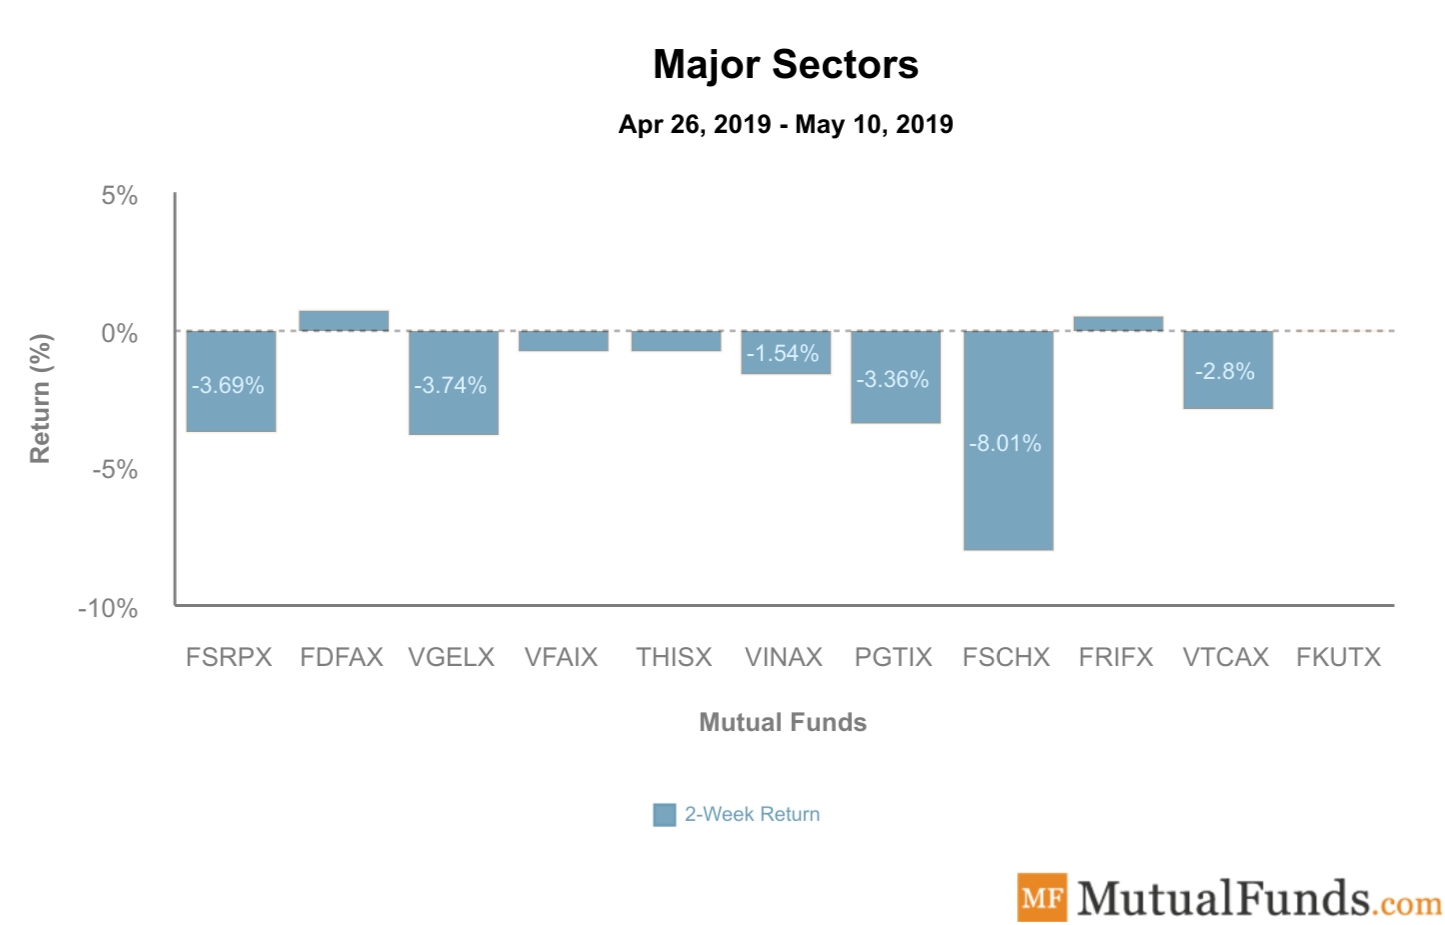 Major Sectors Performance May 14